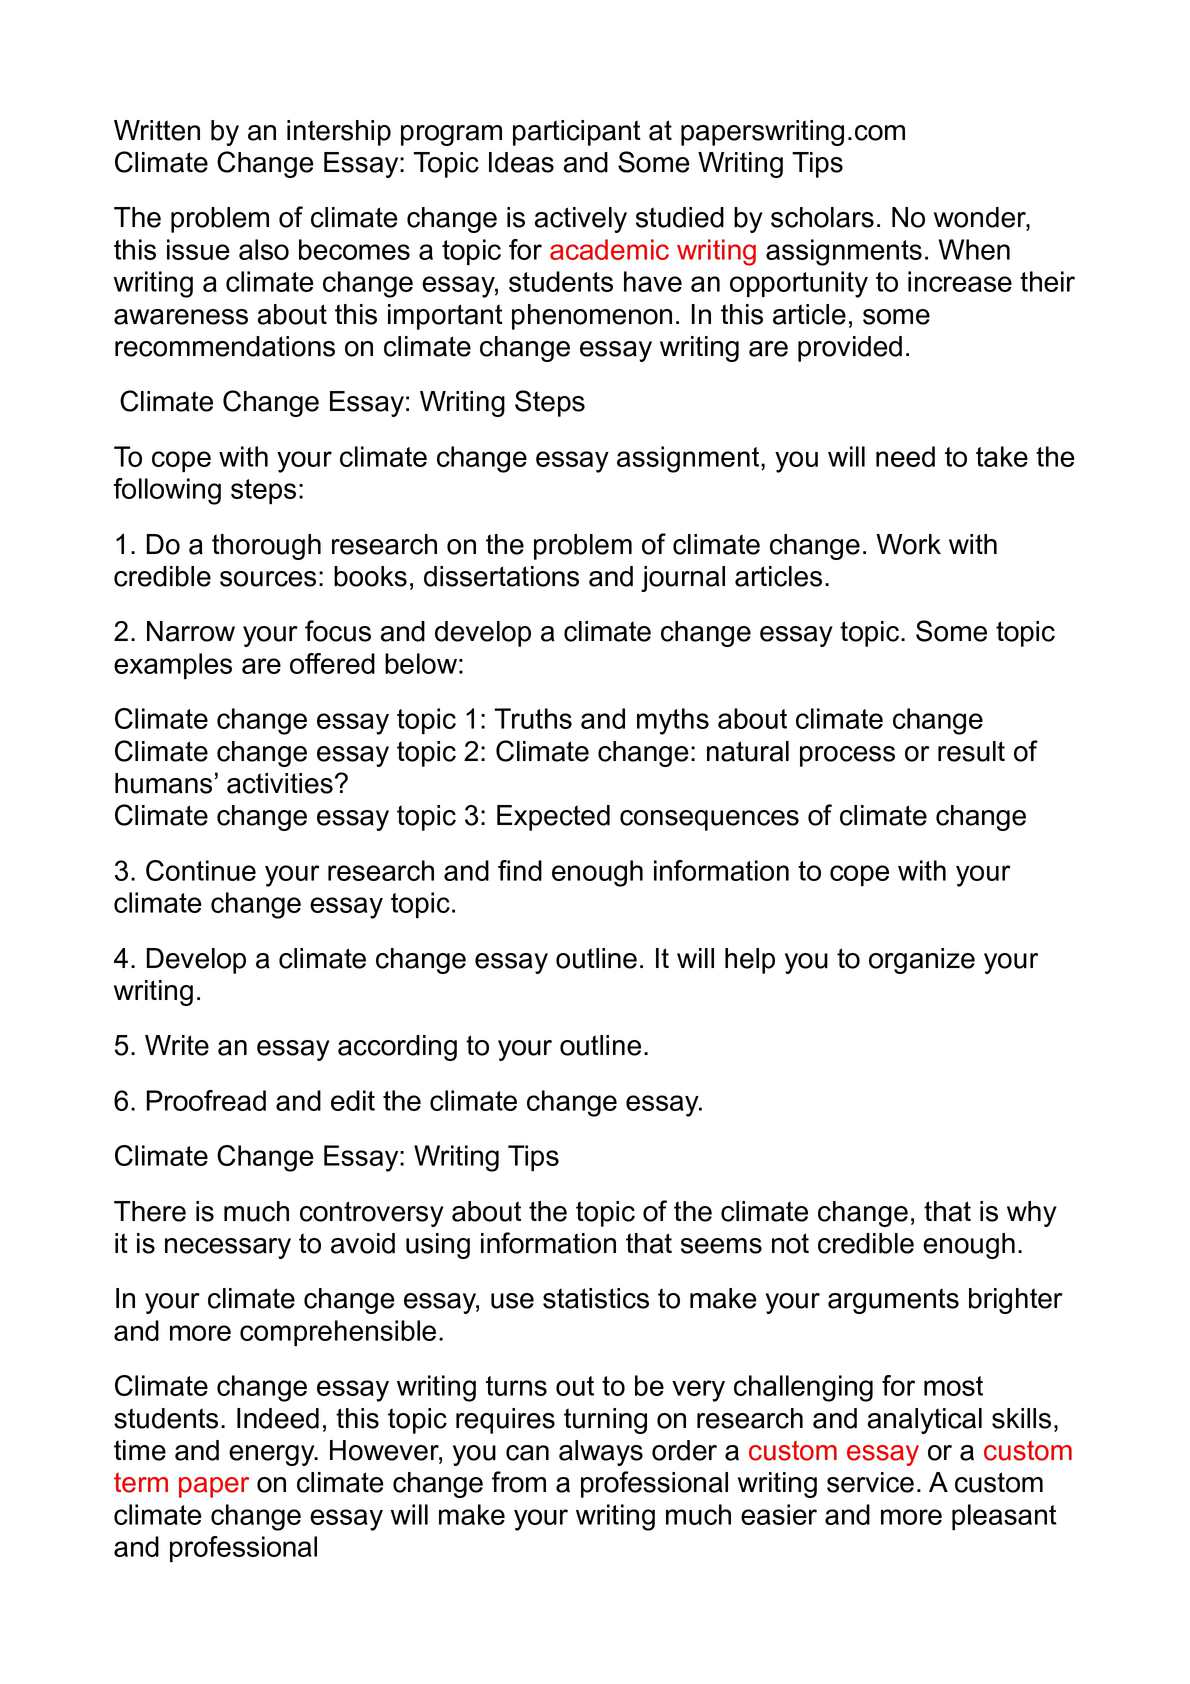 Essay writing website on global warming and climate change